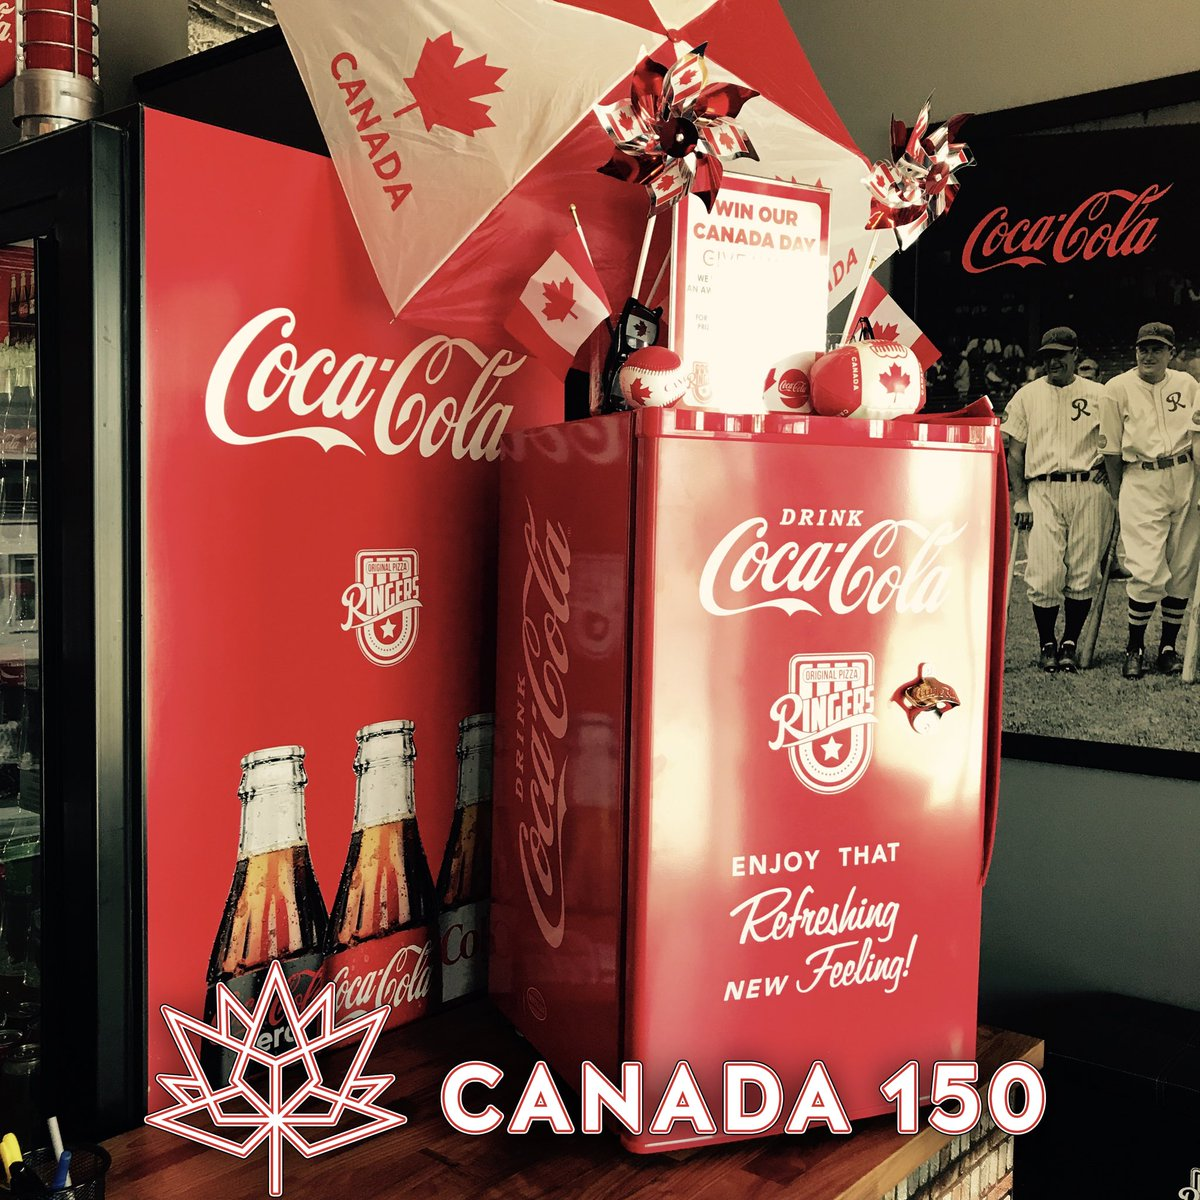 Celebrate #canada150  with a great giveaway! Stocked #cocacola #ringers mini fridge &amp; 4Lrg pizzas! Like &amp; RT to enter<br>http://pic.twitter.com/GYNOFEpEHd